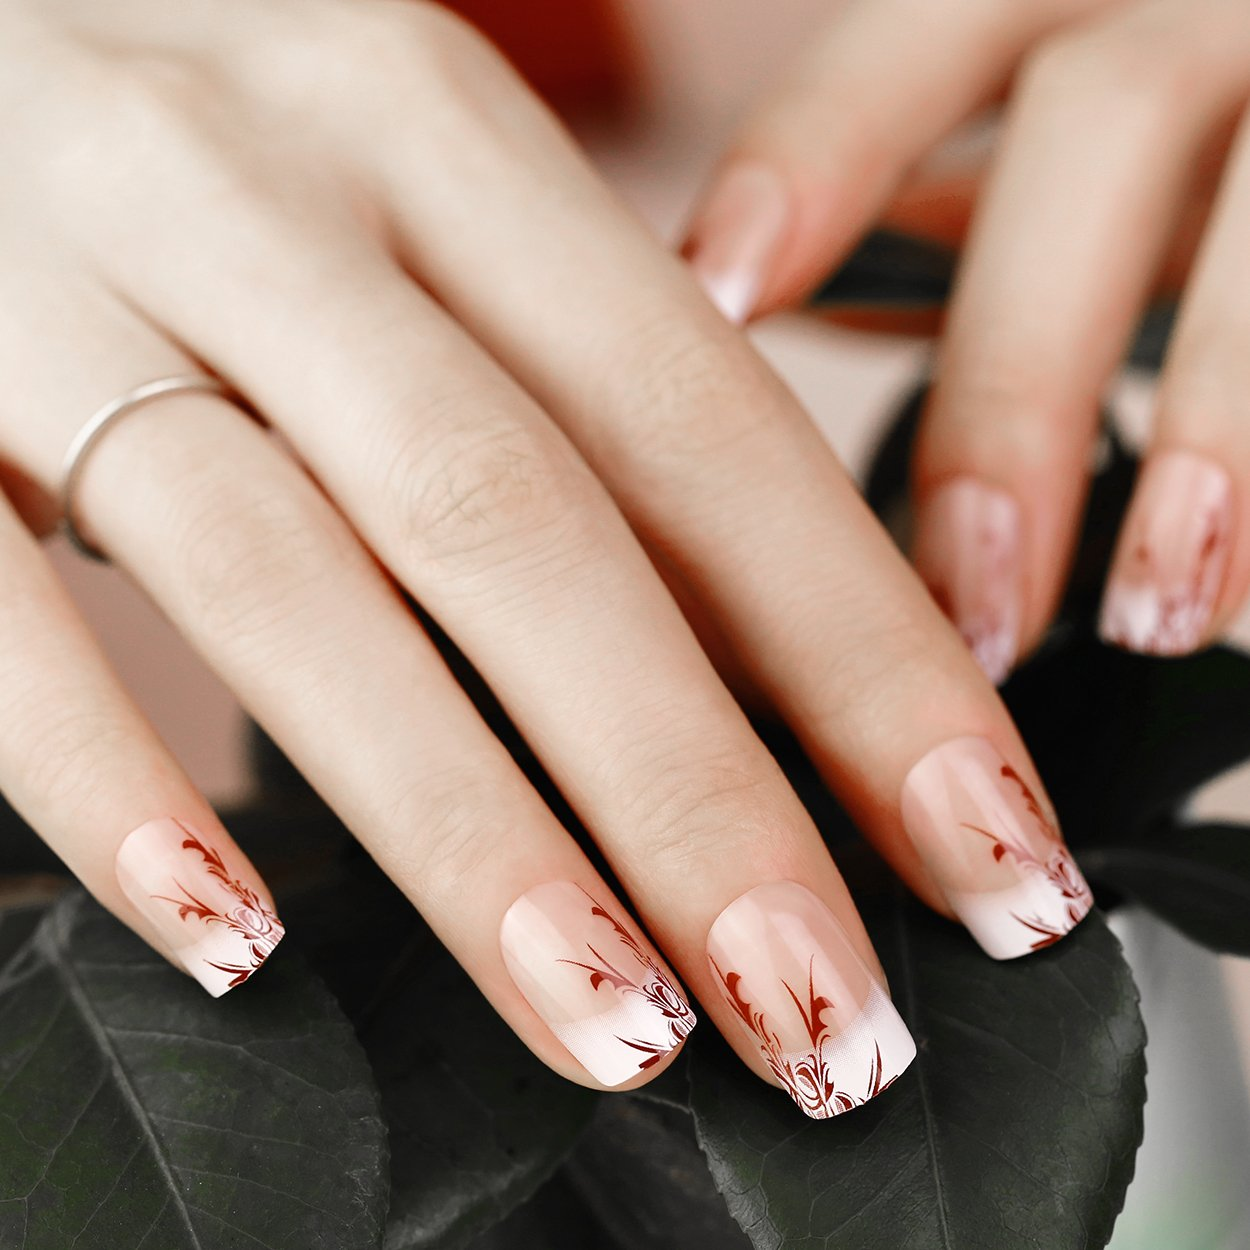 ArtPlus False Nails Kit 24pcs Stiletto Red Elegant Touch French Manicure Fake Nails with Glue Full Cover Long Length